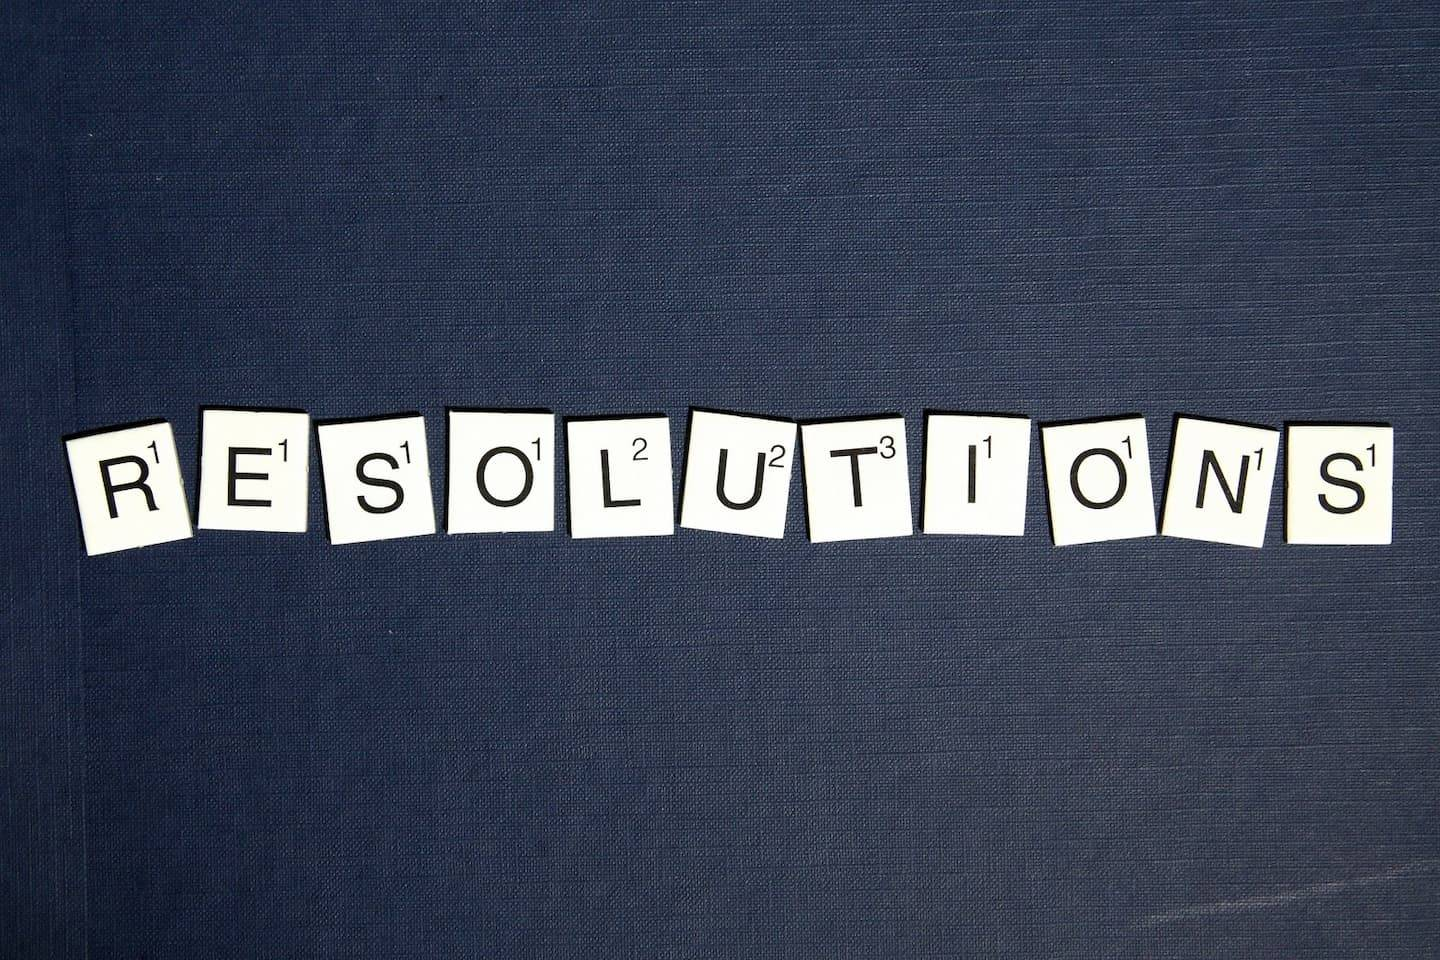 Making Year-Round Resolutions